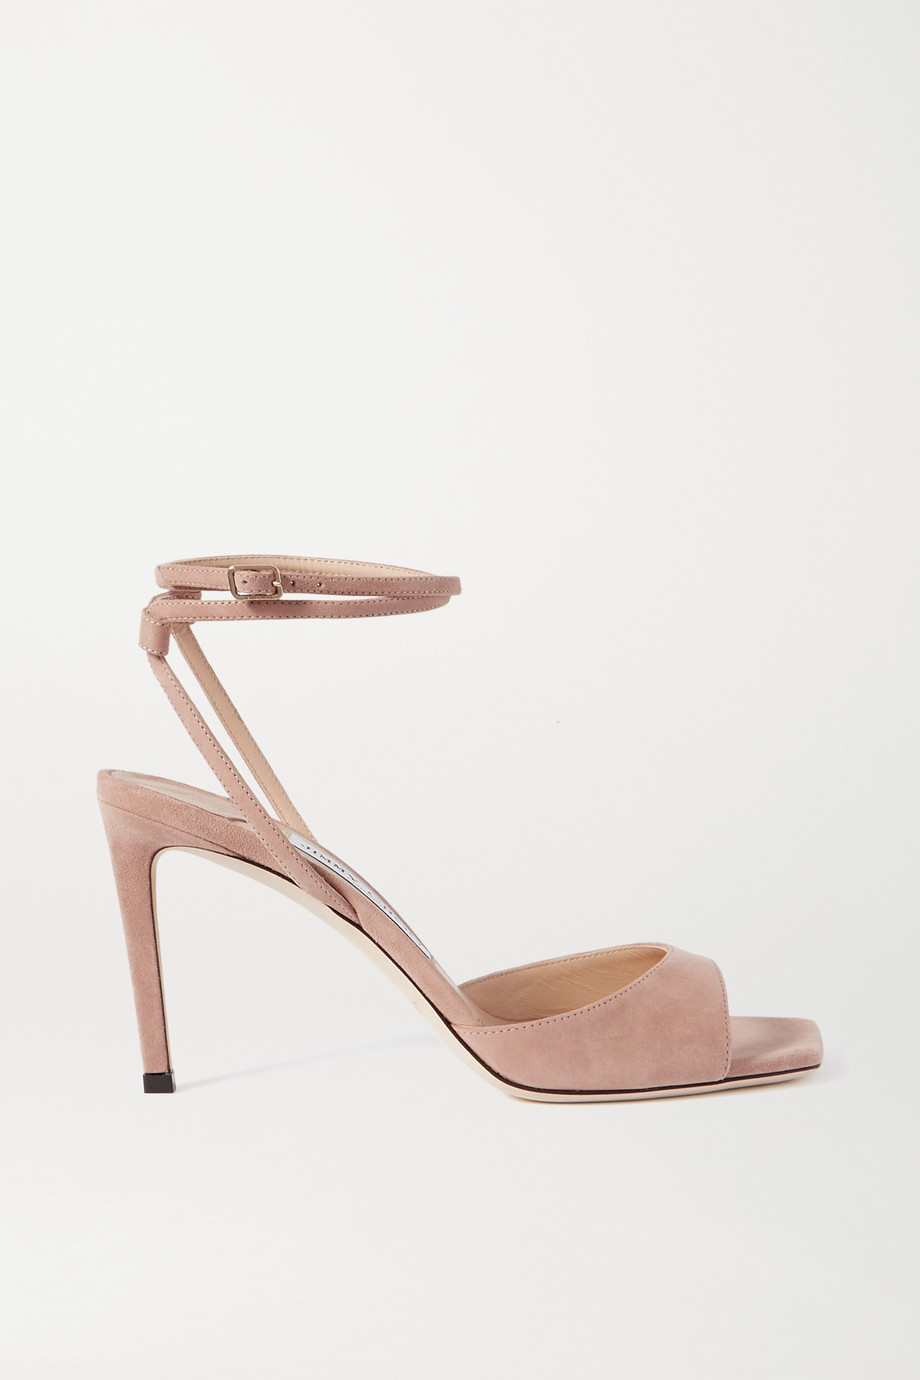 Jimmy Choo Mori 85 suede sandals